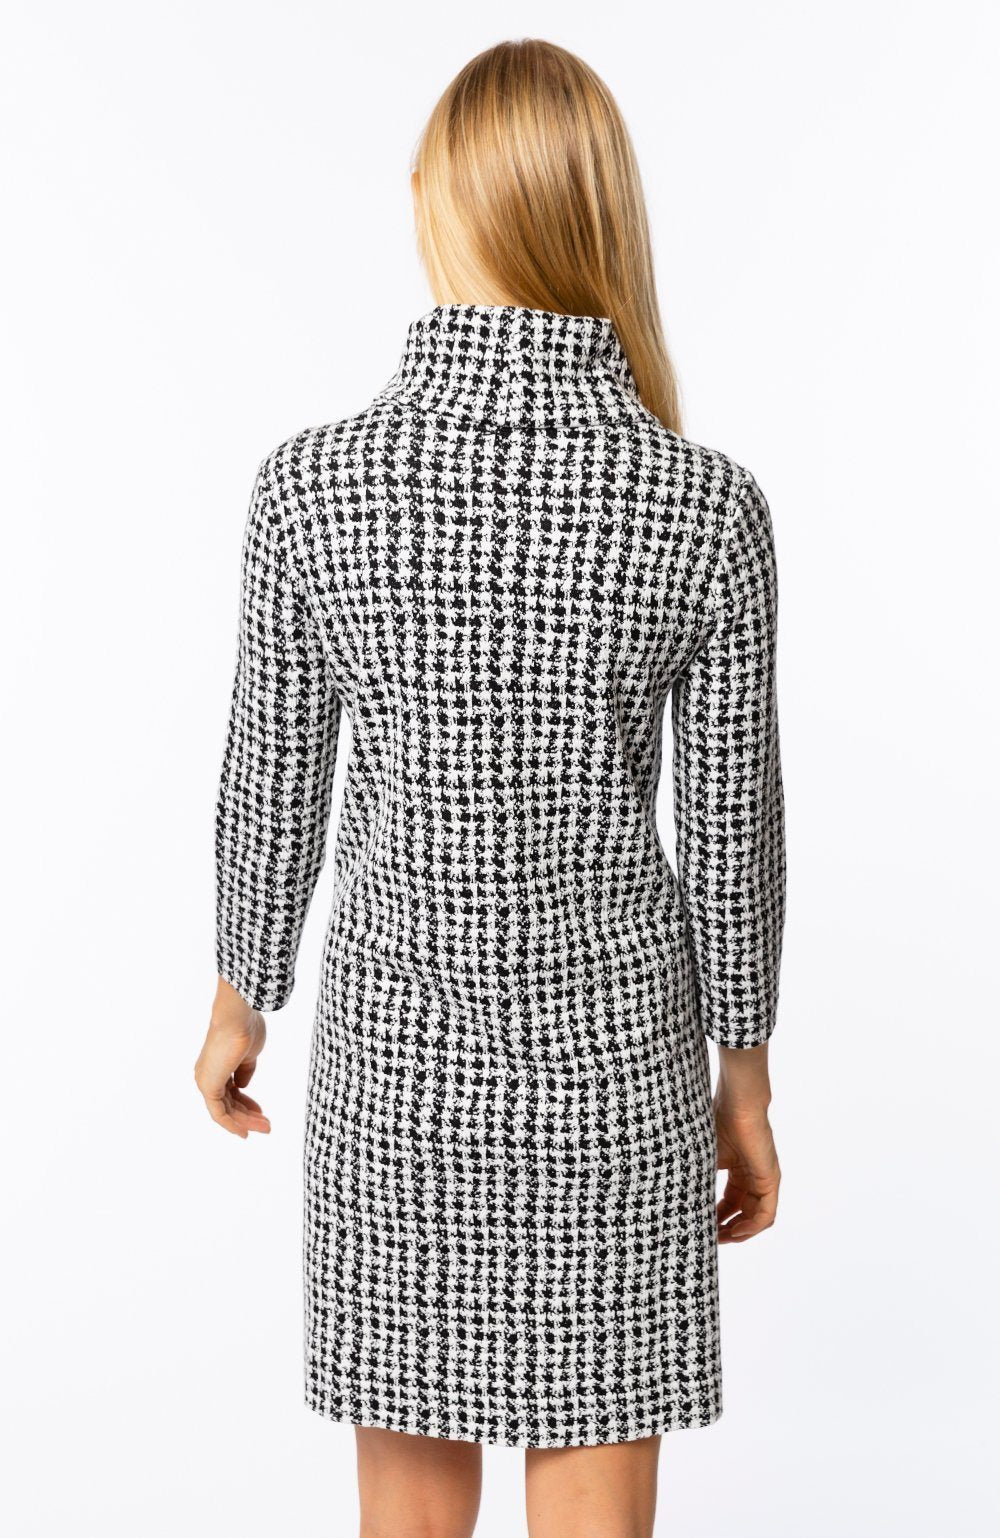 Tyler Böe Kim Cowl Dress - Etched Houndstooth Black/White